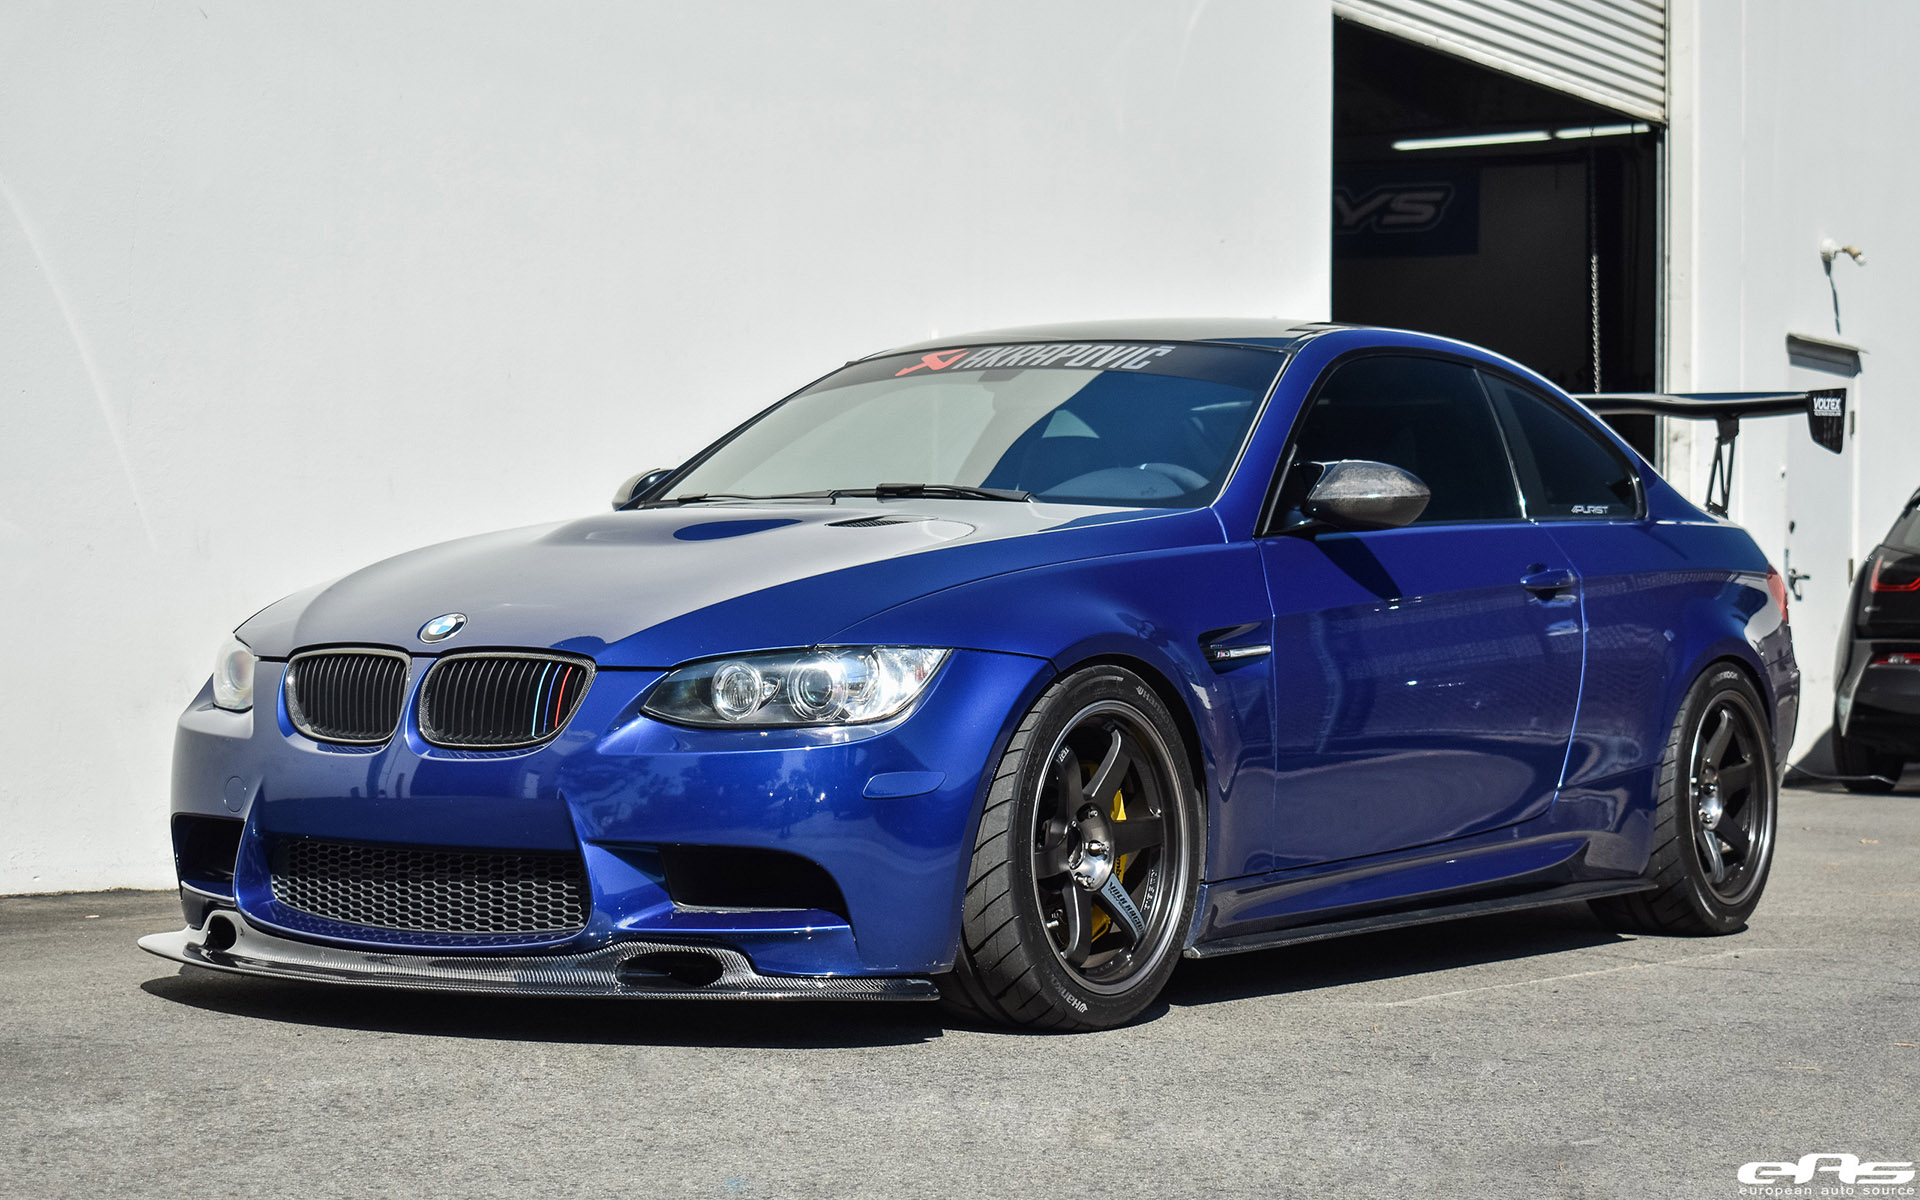 You Re Either Gonna Hate It Or Love It Jdm Style Lemans Blue Bmw E92 M3